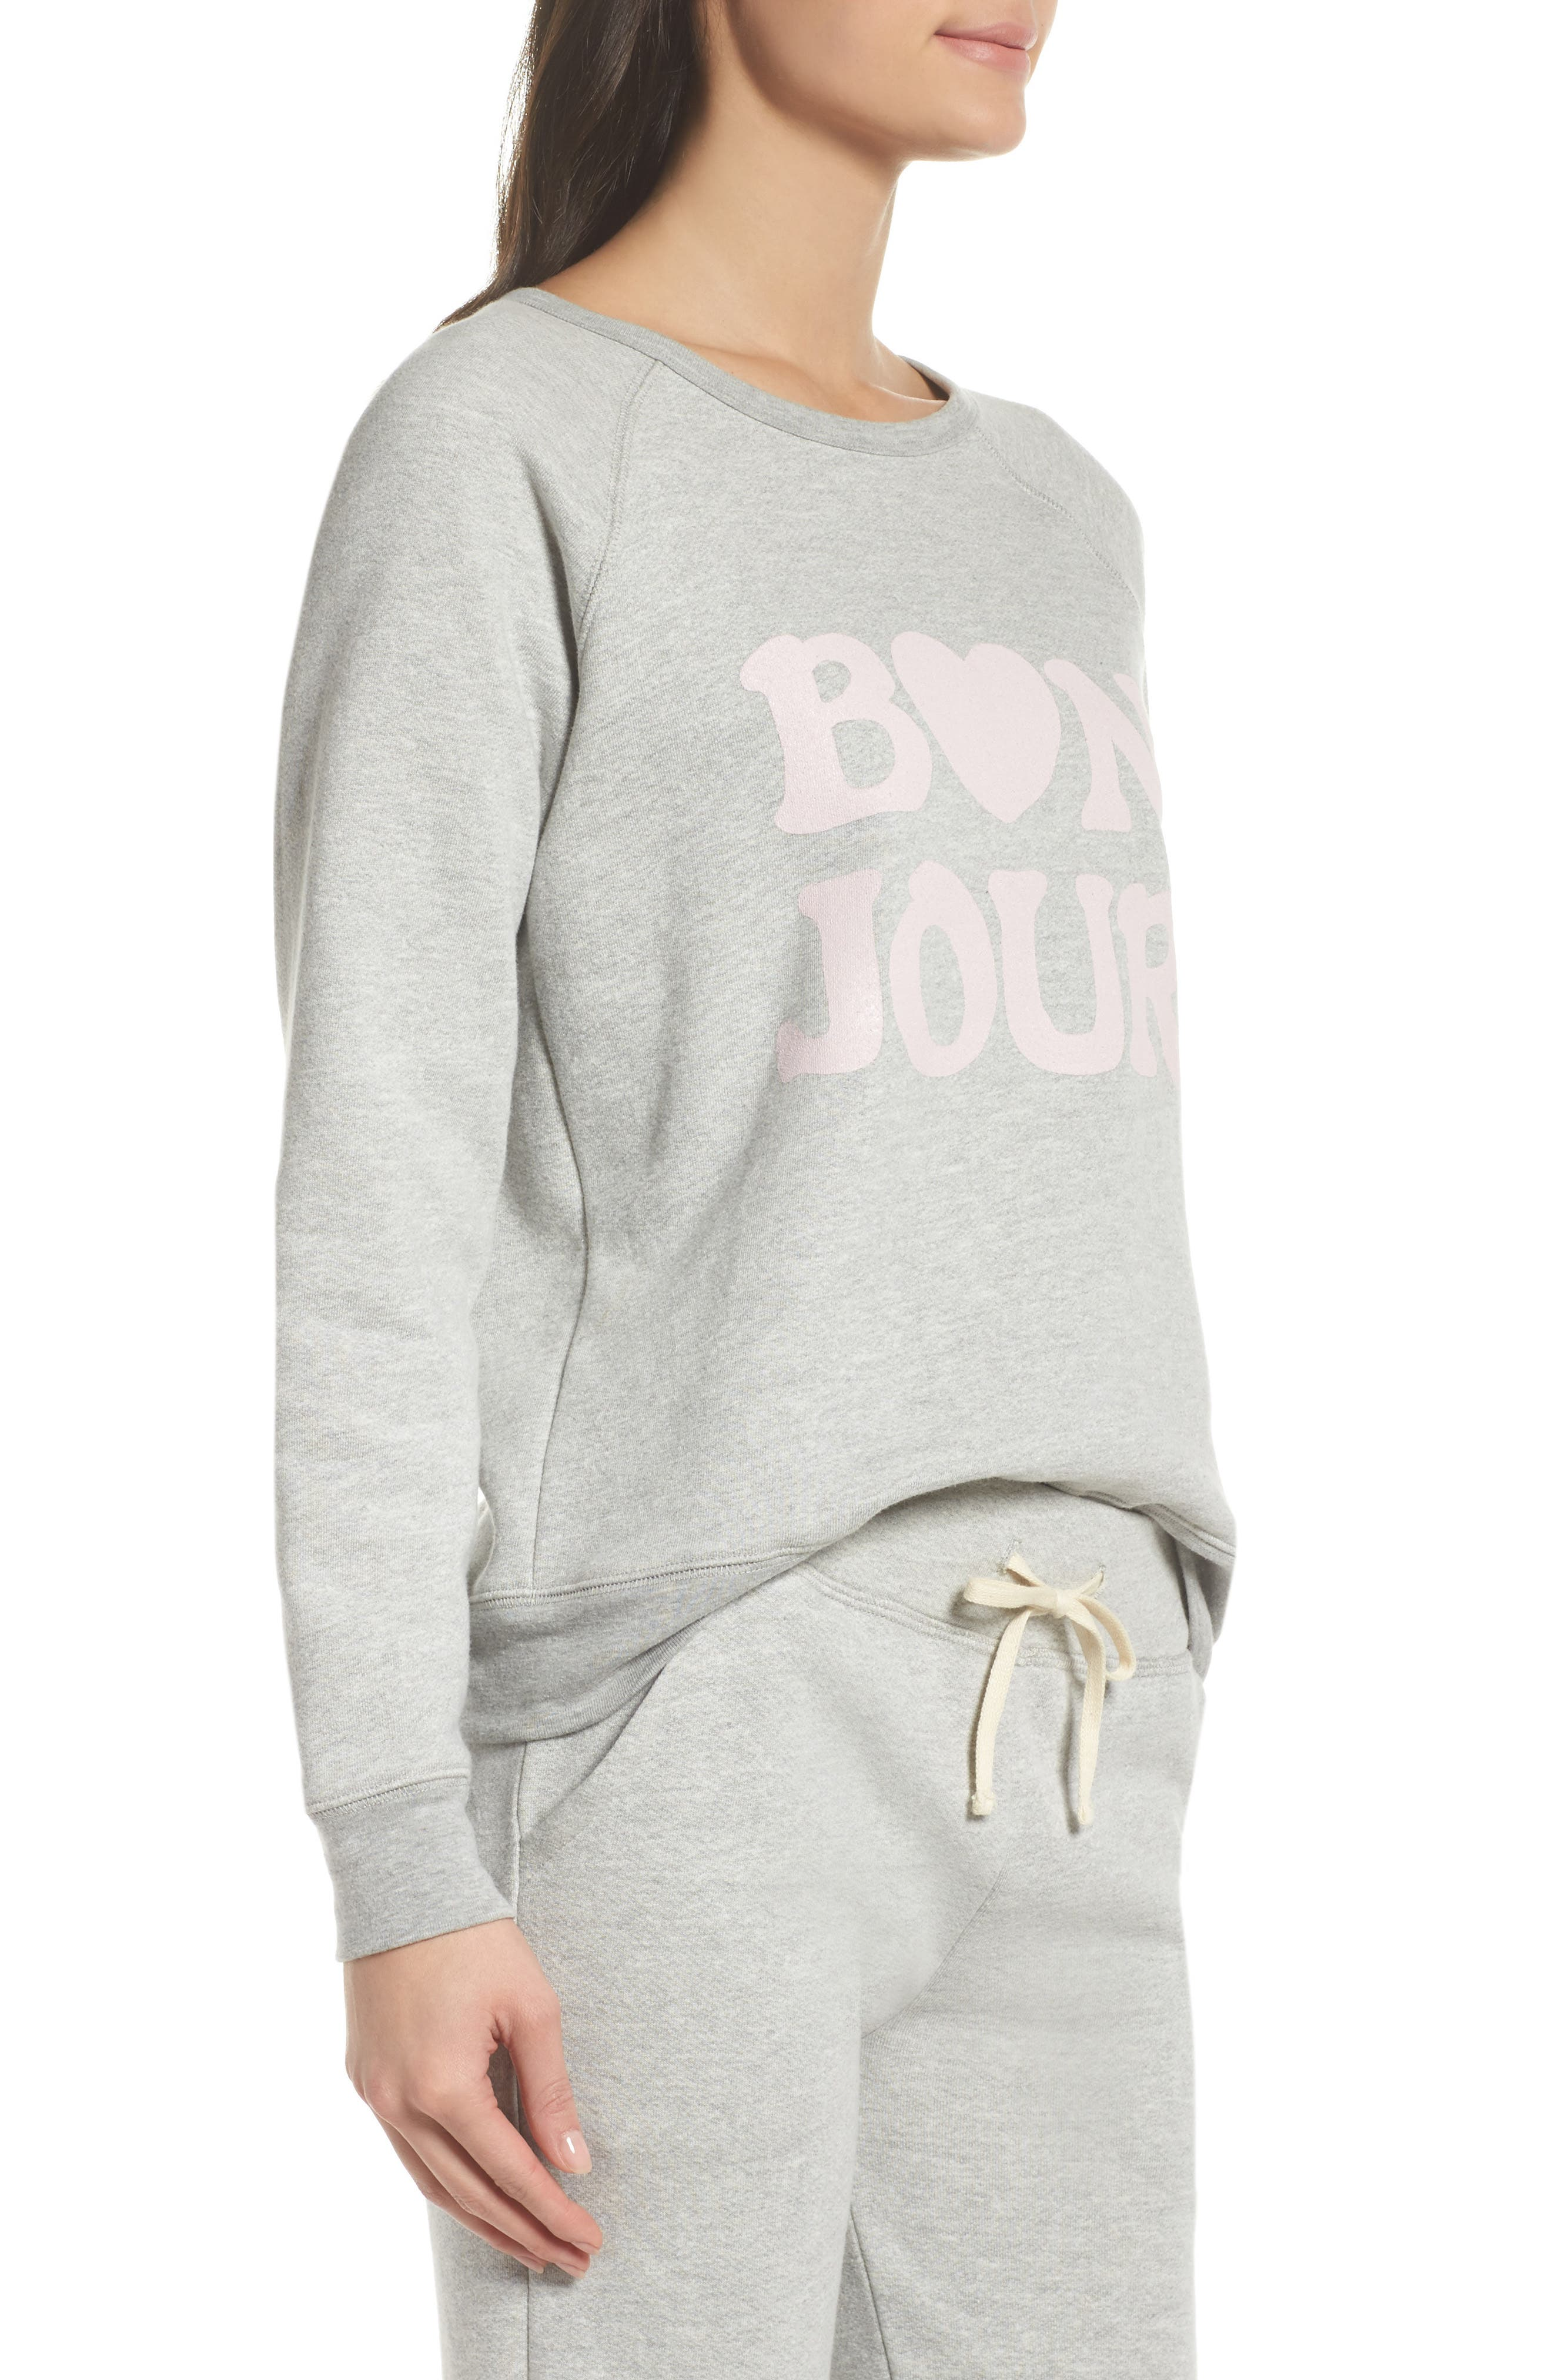 Bon Jour Sweatshirt,                             Alternate thumbnail 3, color,                             028